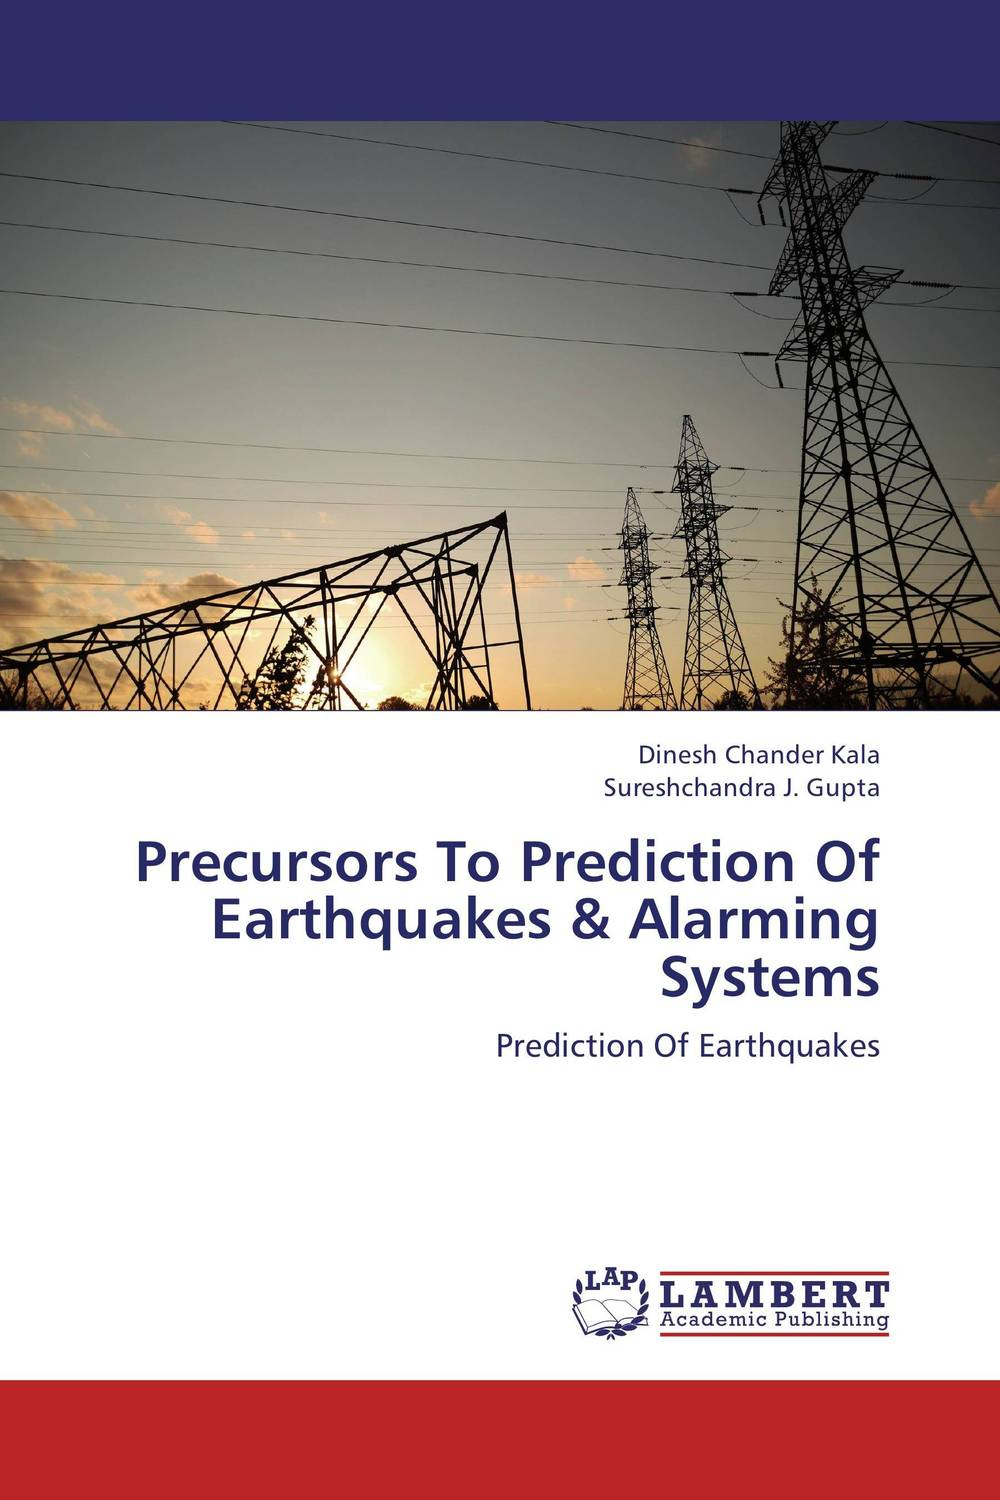 Precursors To Prediction Of Earthquakes & Alarming Systems analog interfacing to embedded microprocessor systems